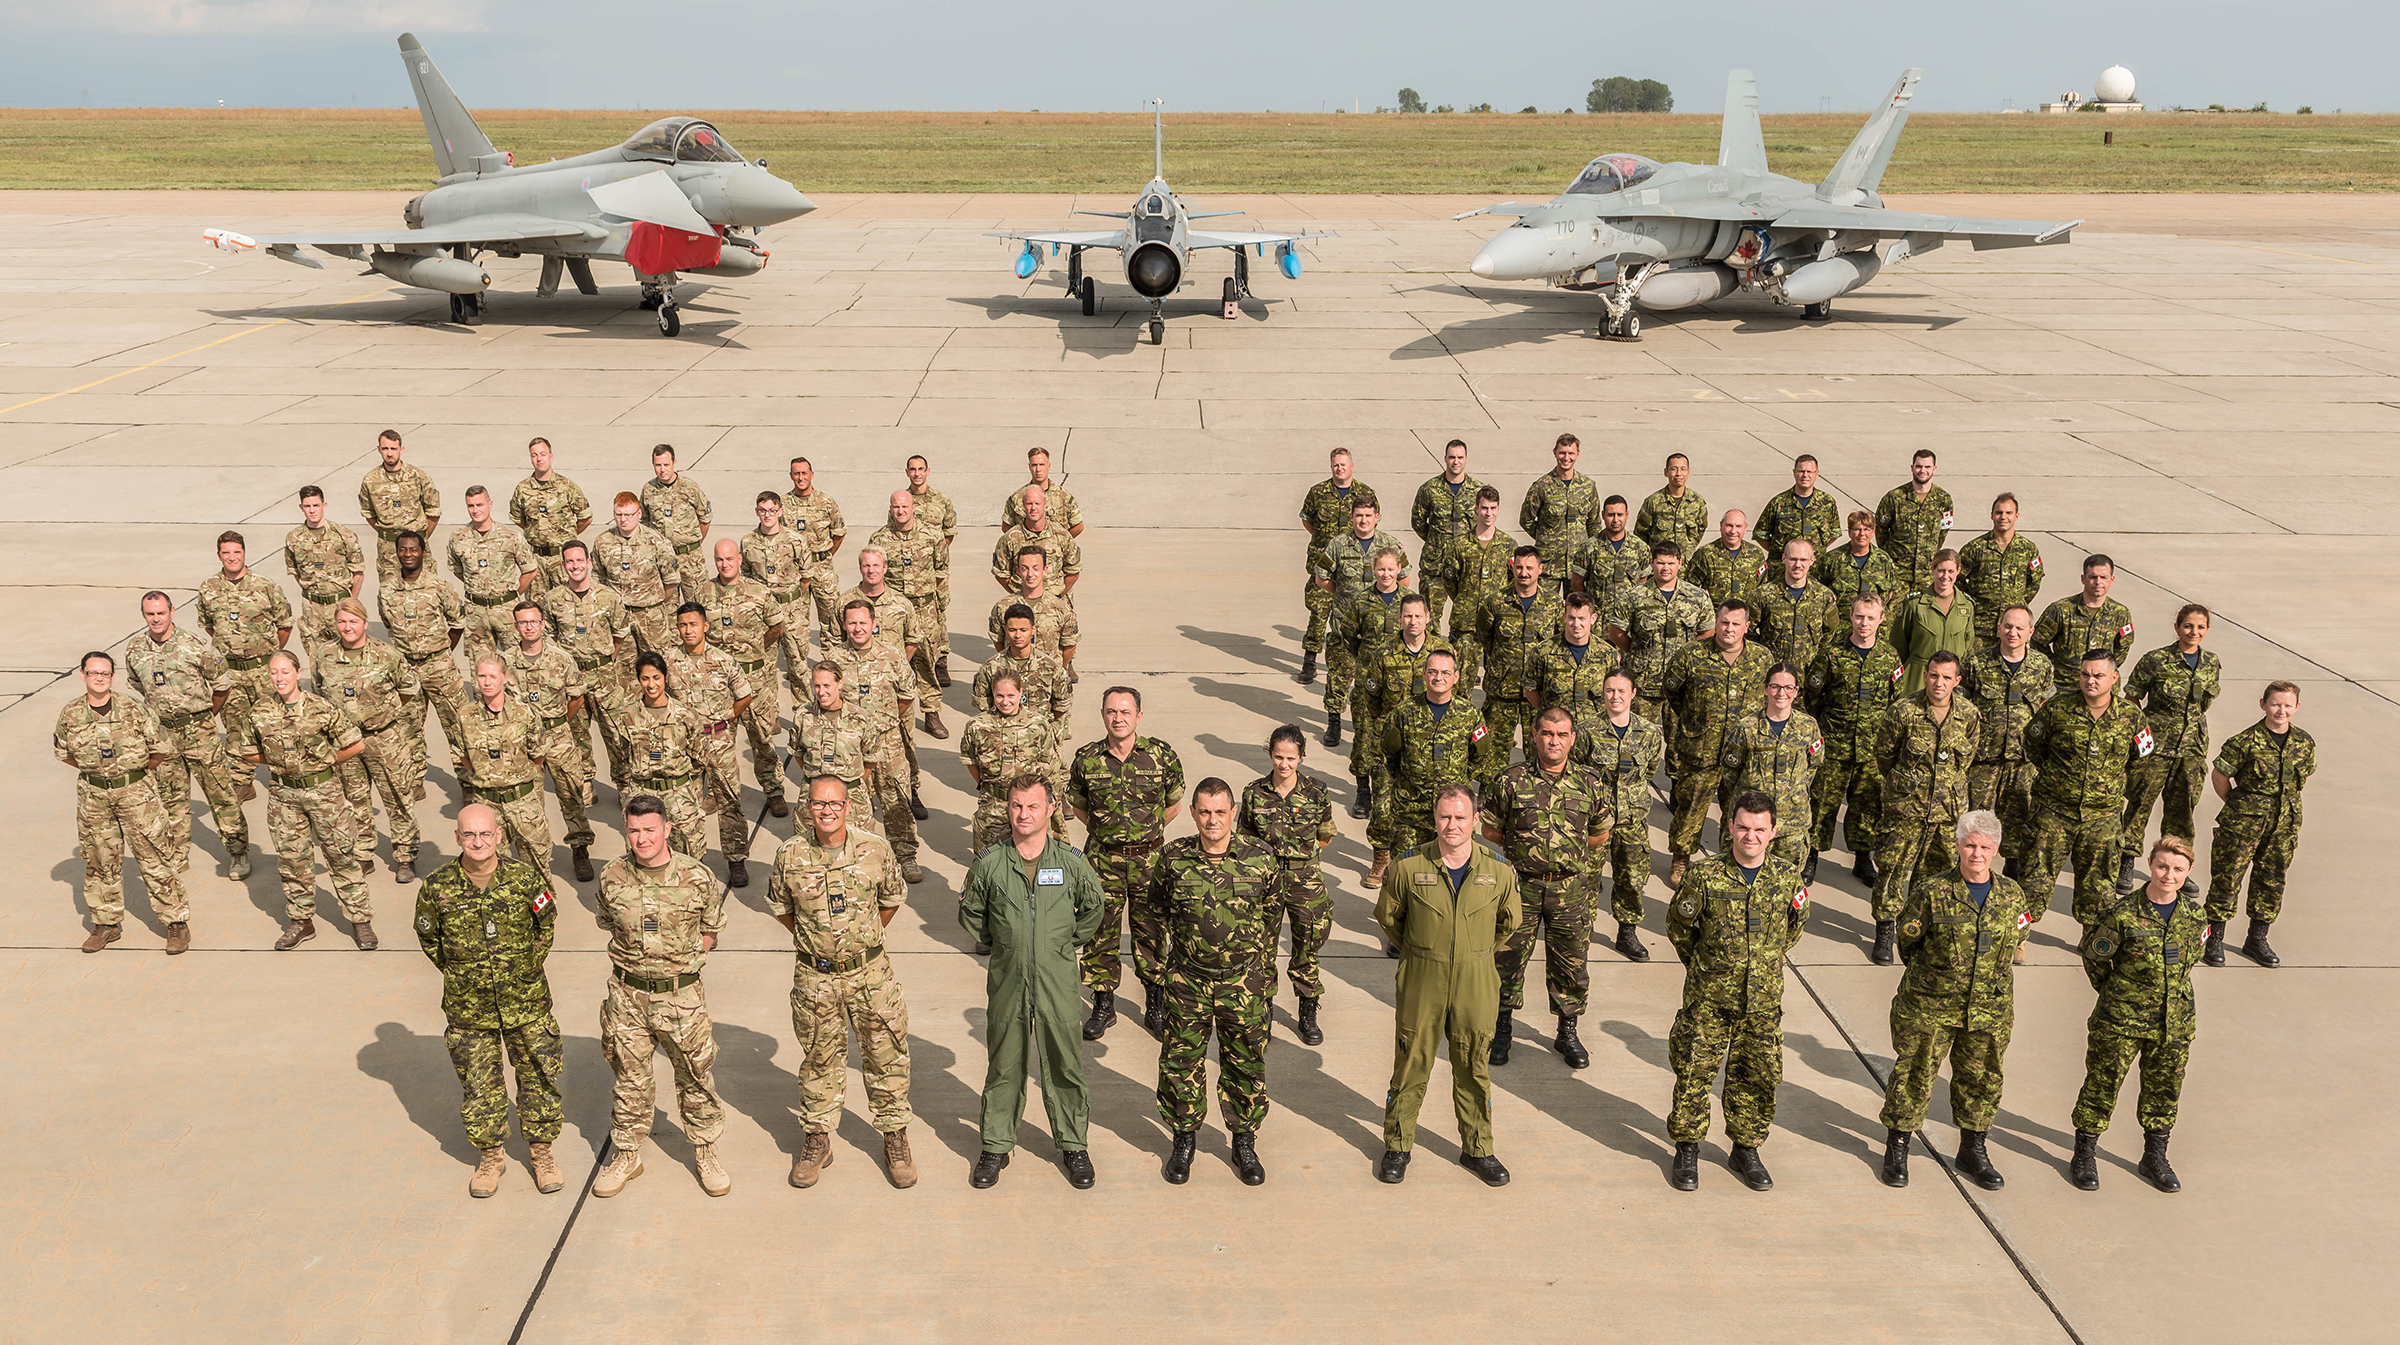 A group of people in military combat uniforms stand on a tarmac outdoors with aircraft behind them.